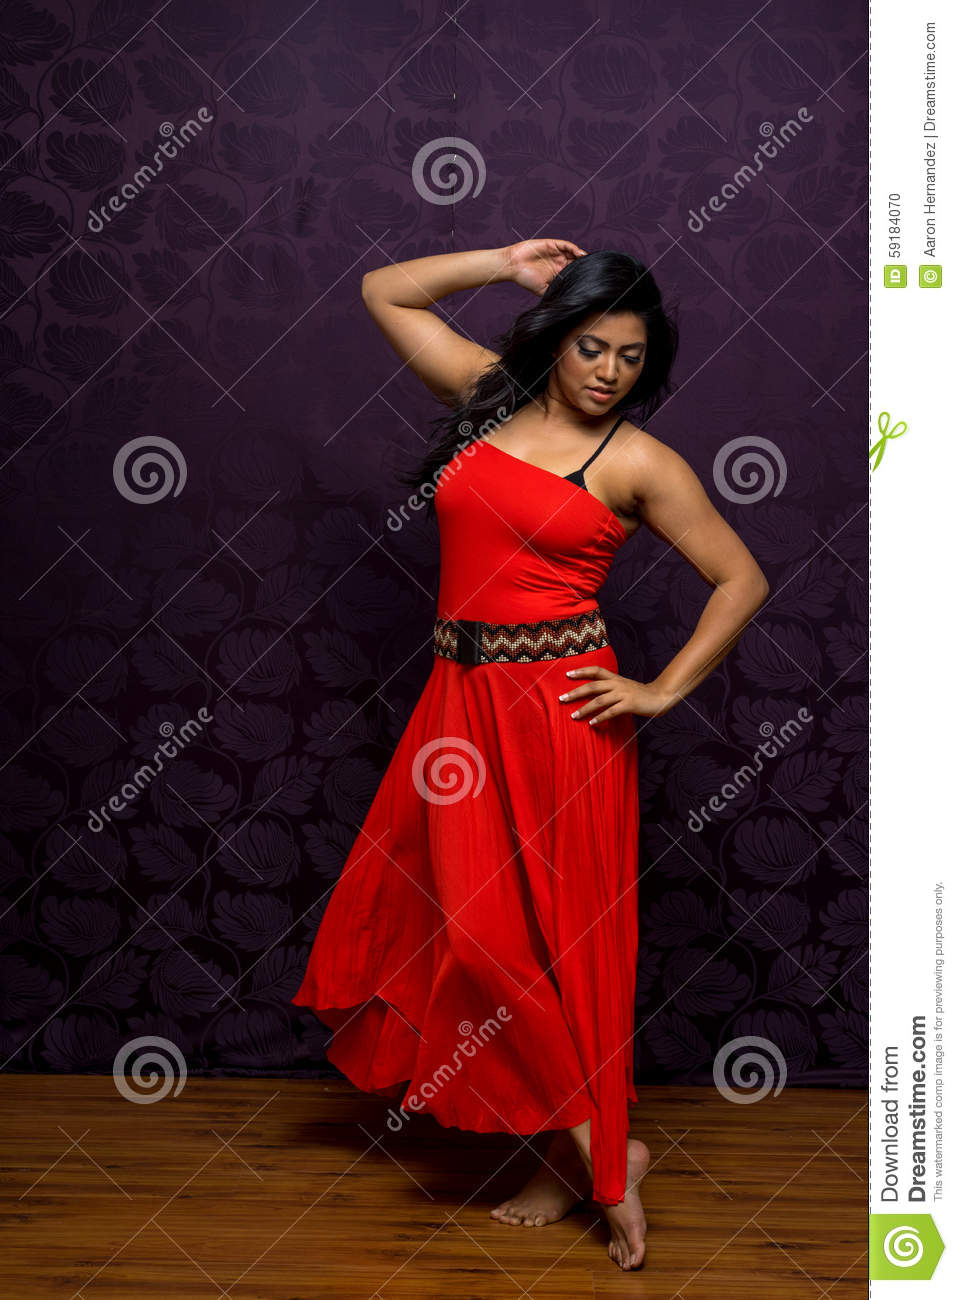 c8f5d77105 Indian female wearing a beautifl and vibrant flowing sleeveless dress. More  similar stock images